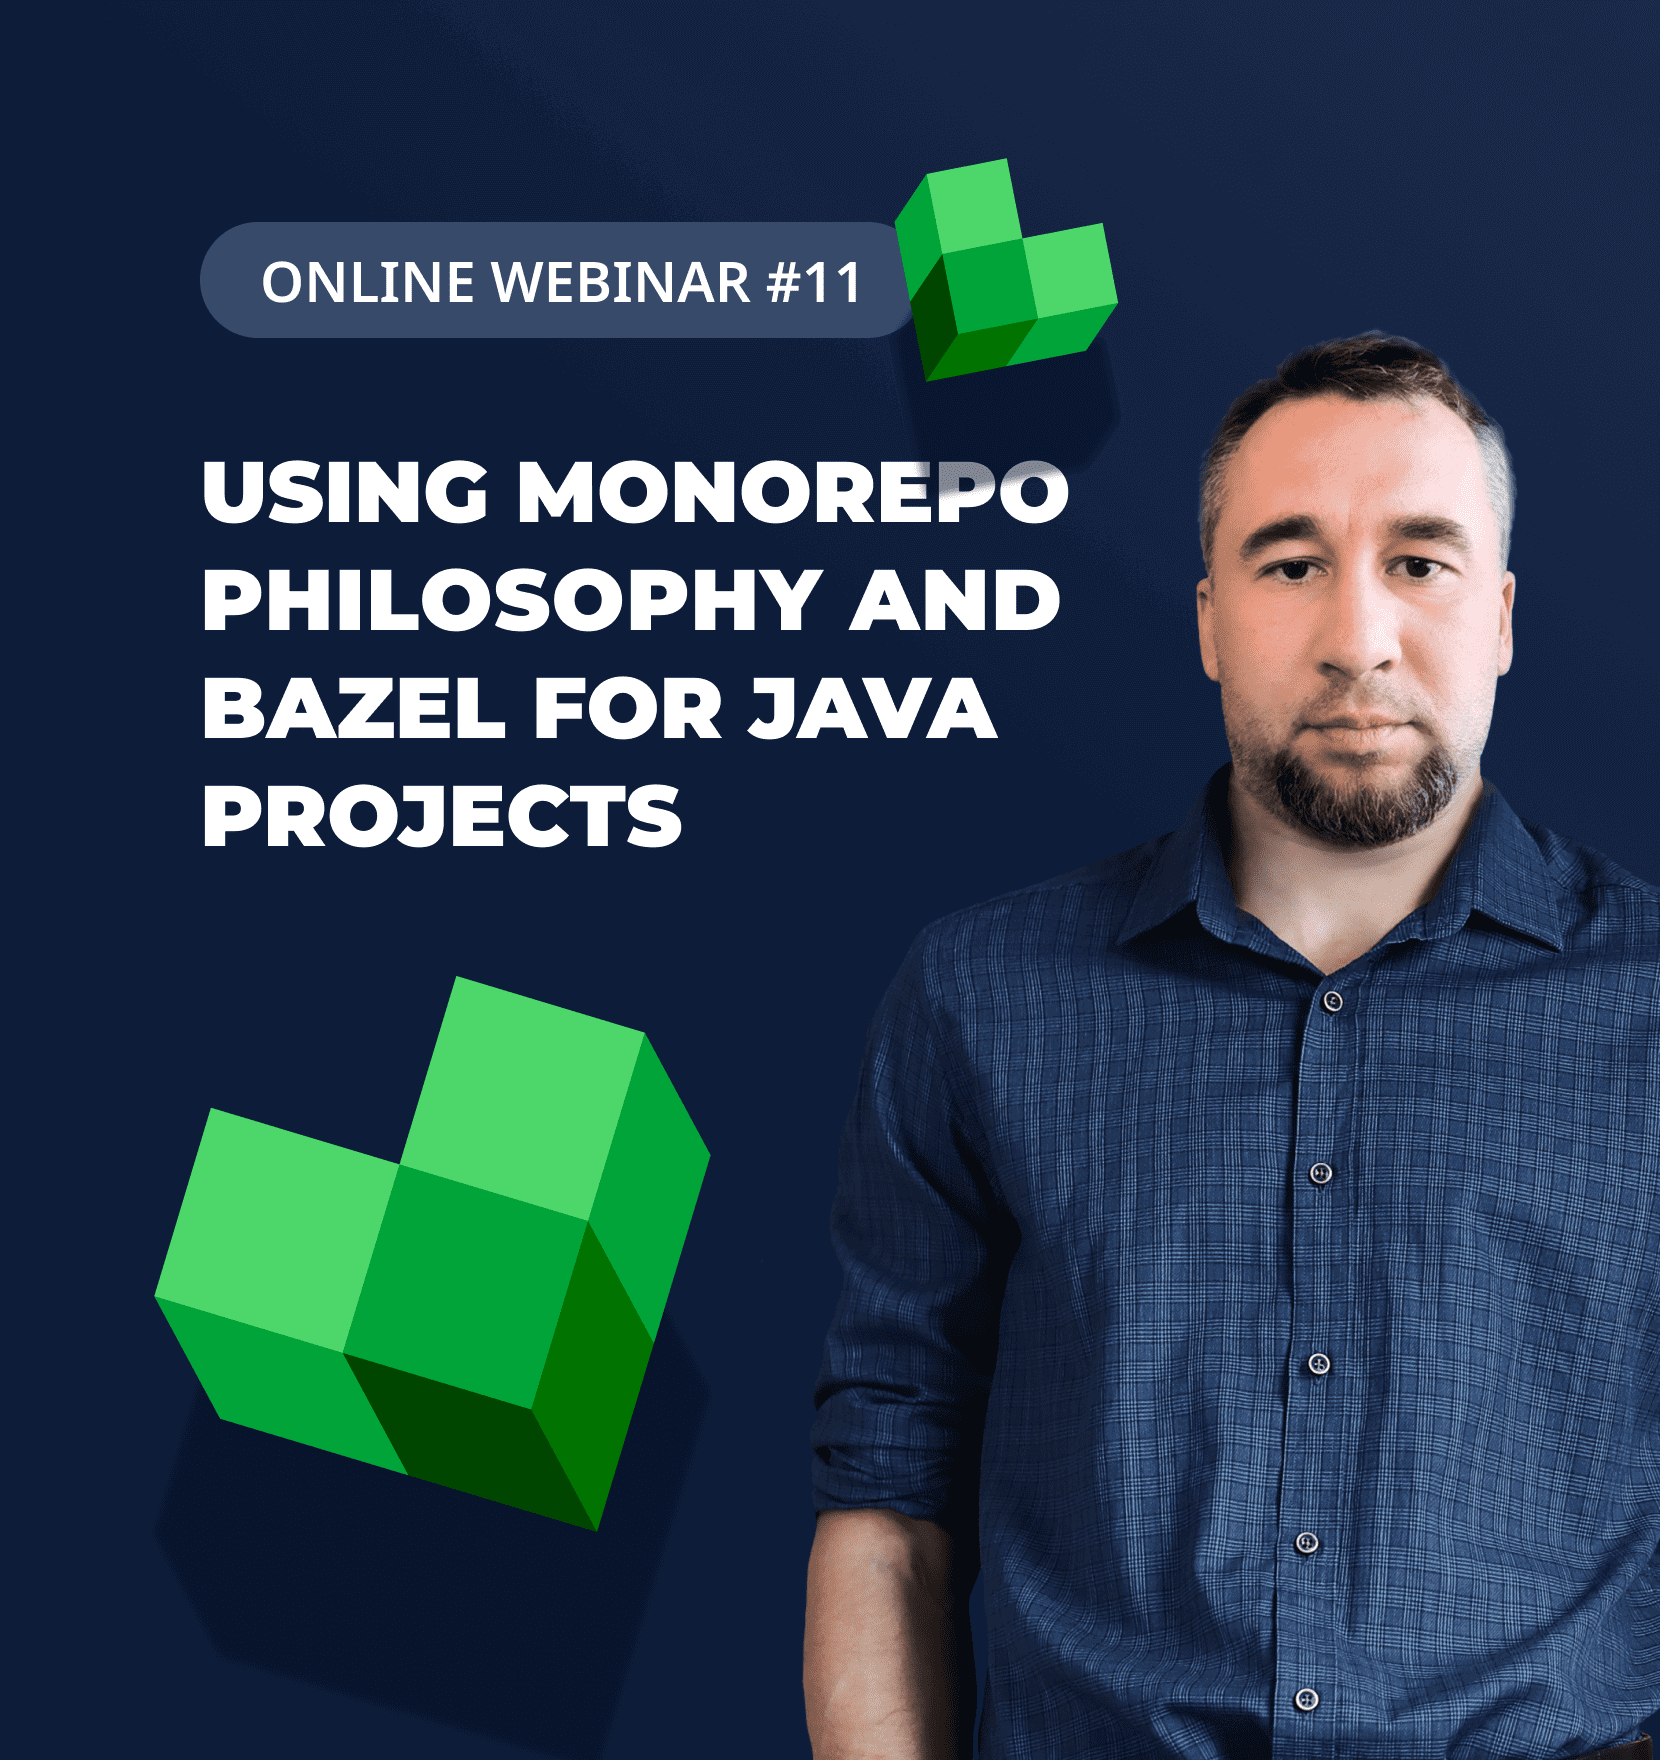 Using Monorepo philosophy and Bazel for Java projects